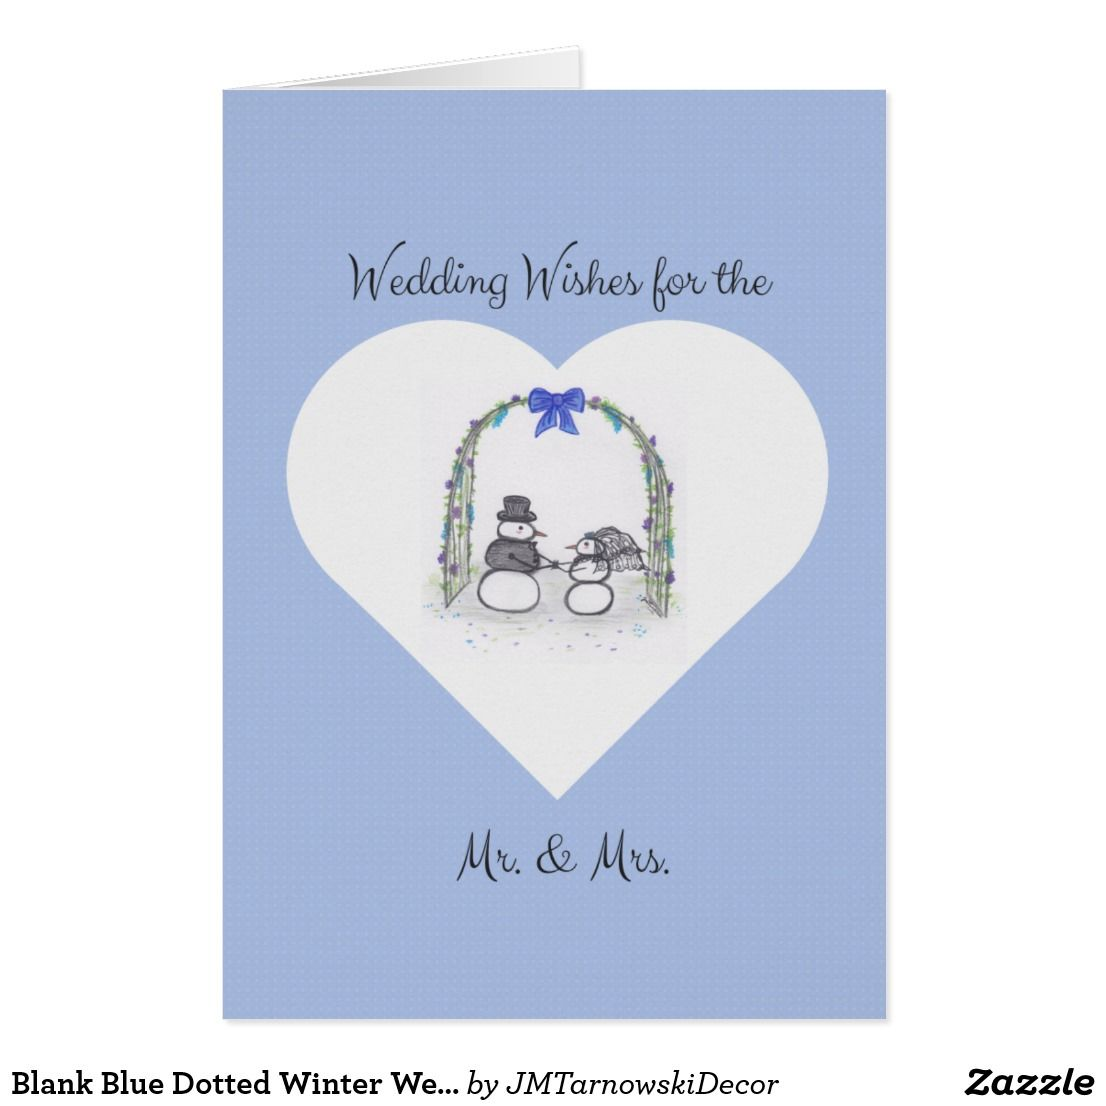 Blank Blue Dotted Winter Wedding Greeting Card Greeting Cards